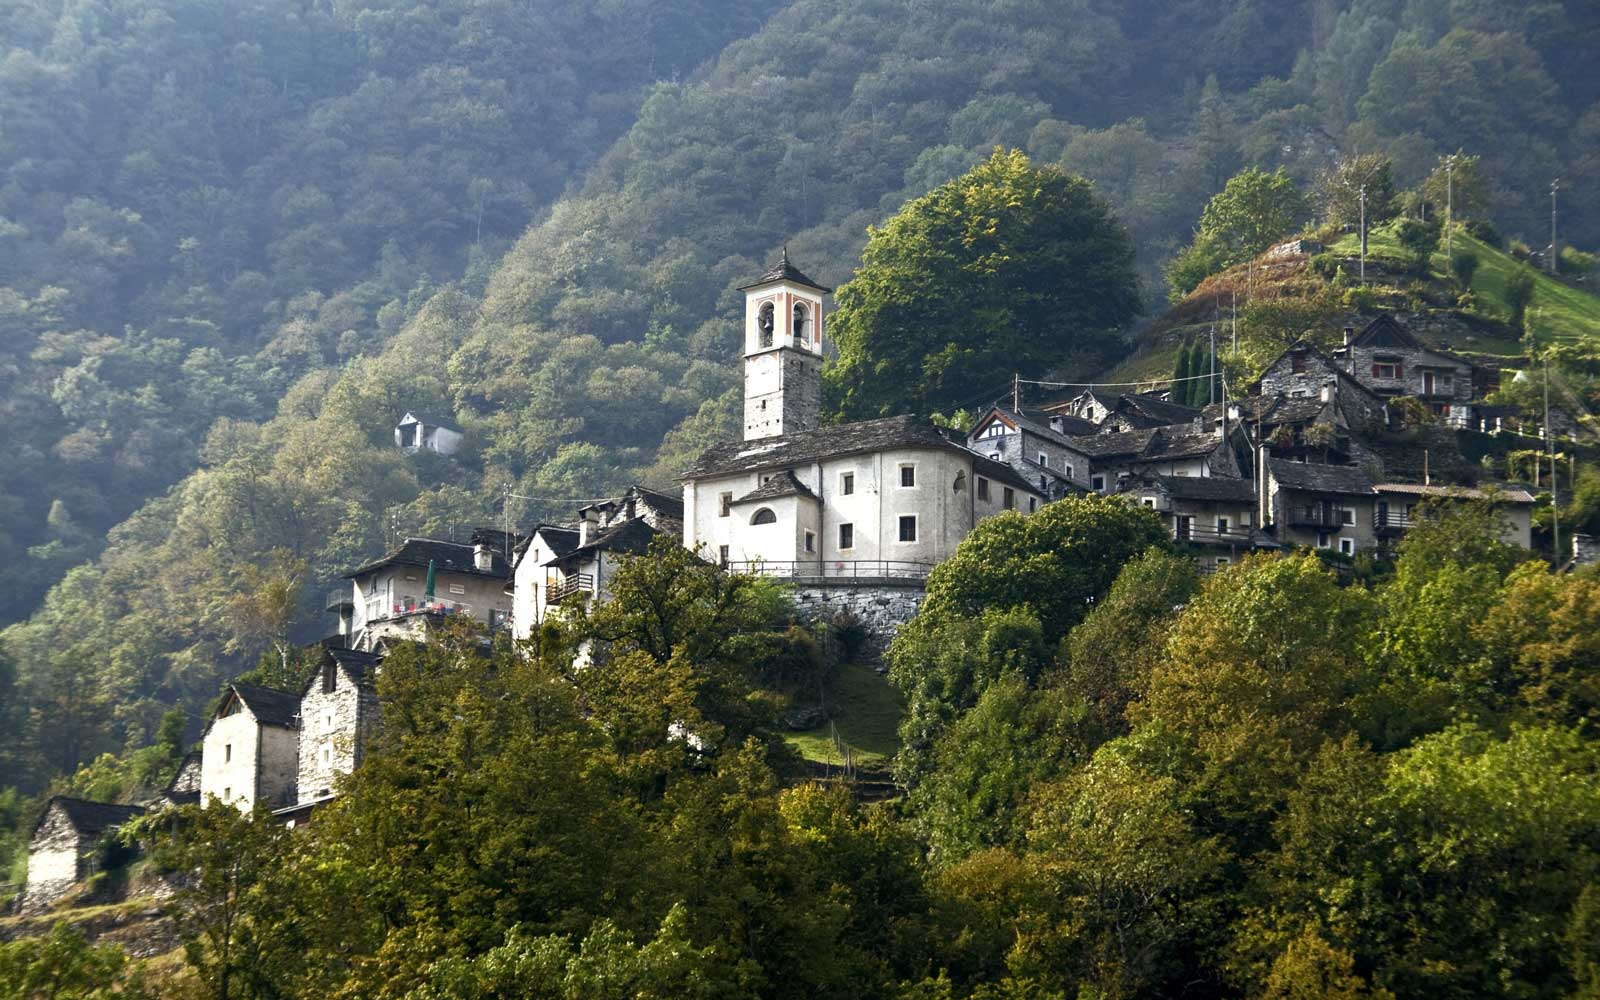 Corippo, Switzerland